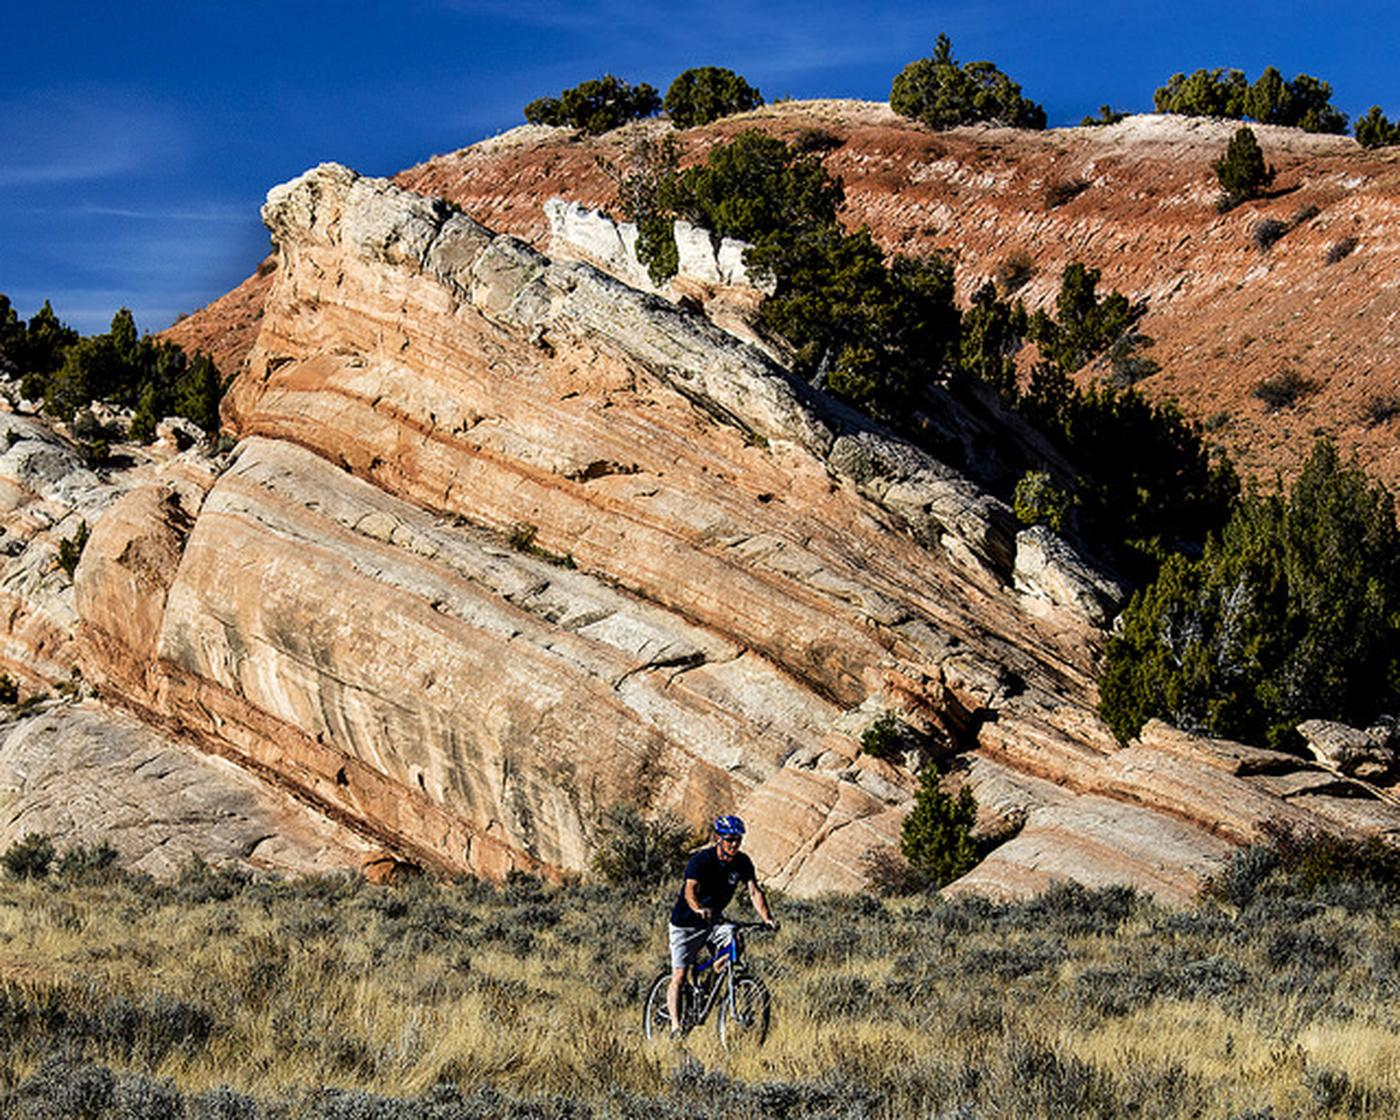 Wyoming Johnny Behind the RocksA mountain biker rides his bike in front of a red rock formation.